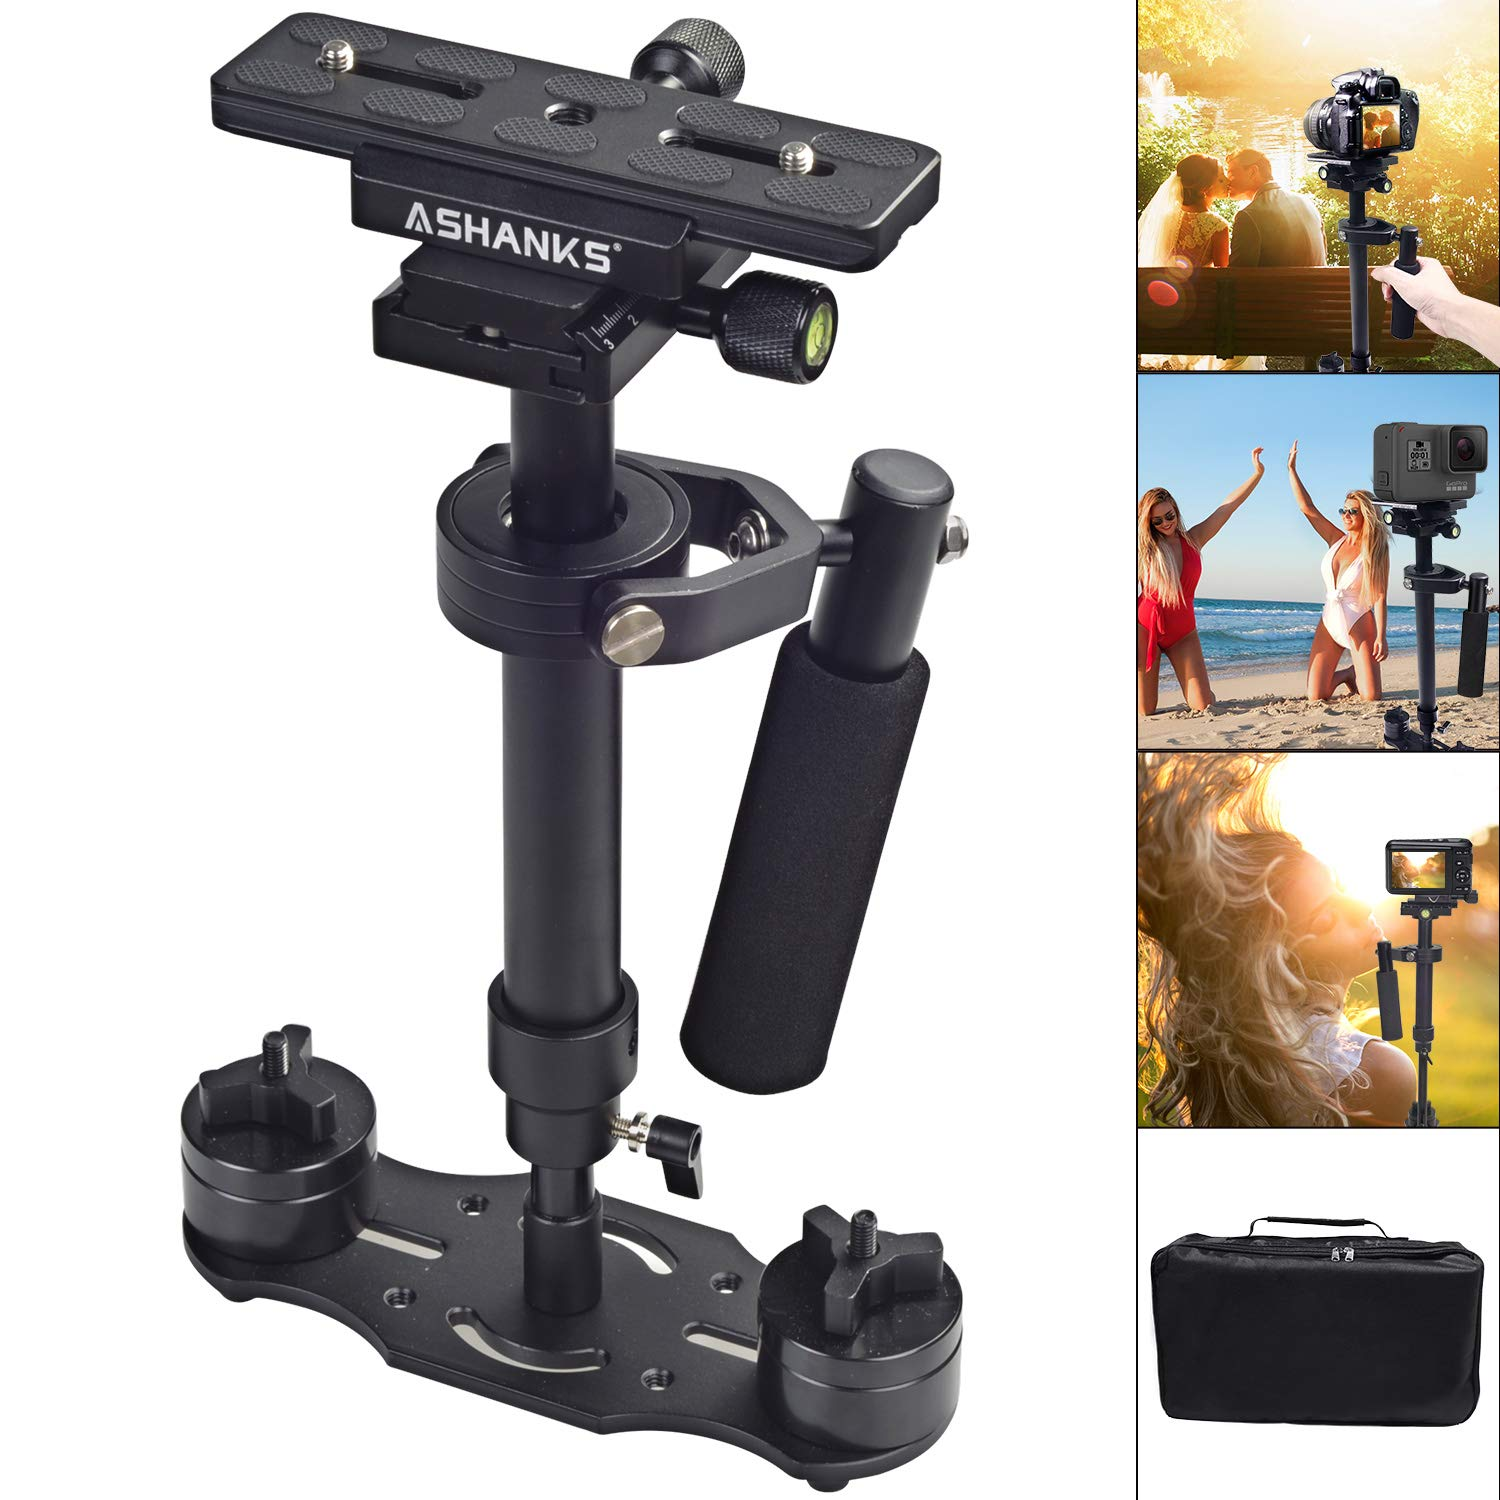 ASHANKS S40 15.8'/40CM Handheld Stabilizer Camera Stabilizer For DSLR Stedicam Canon Nikon GoPro AEE Video Camera by ASHANKS